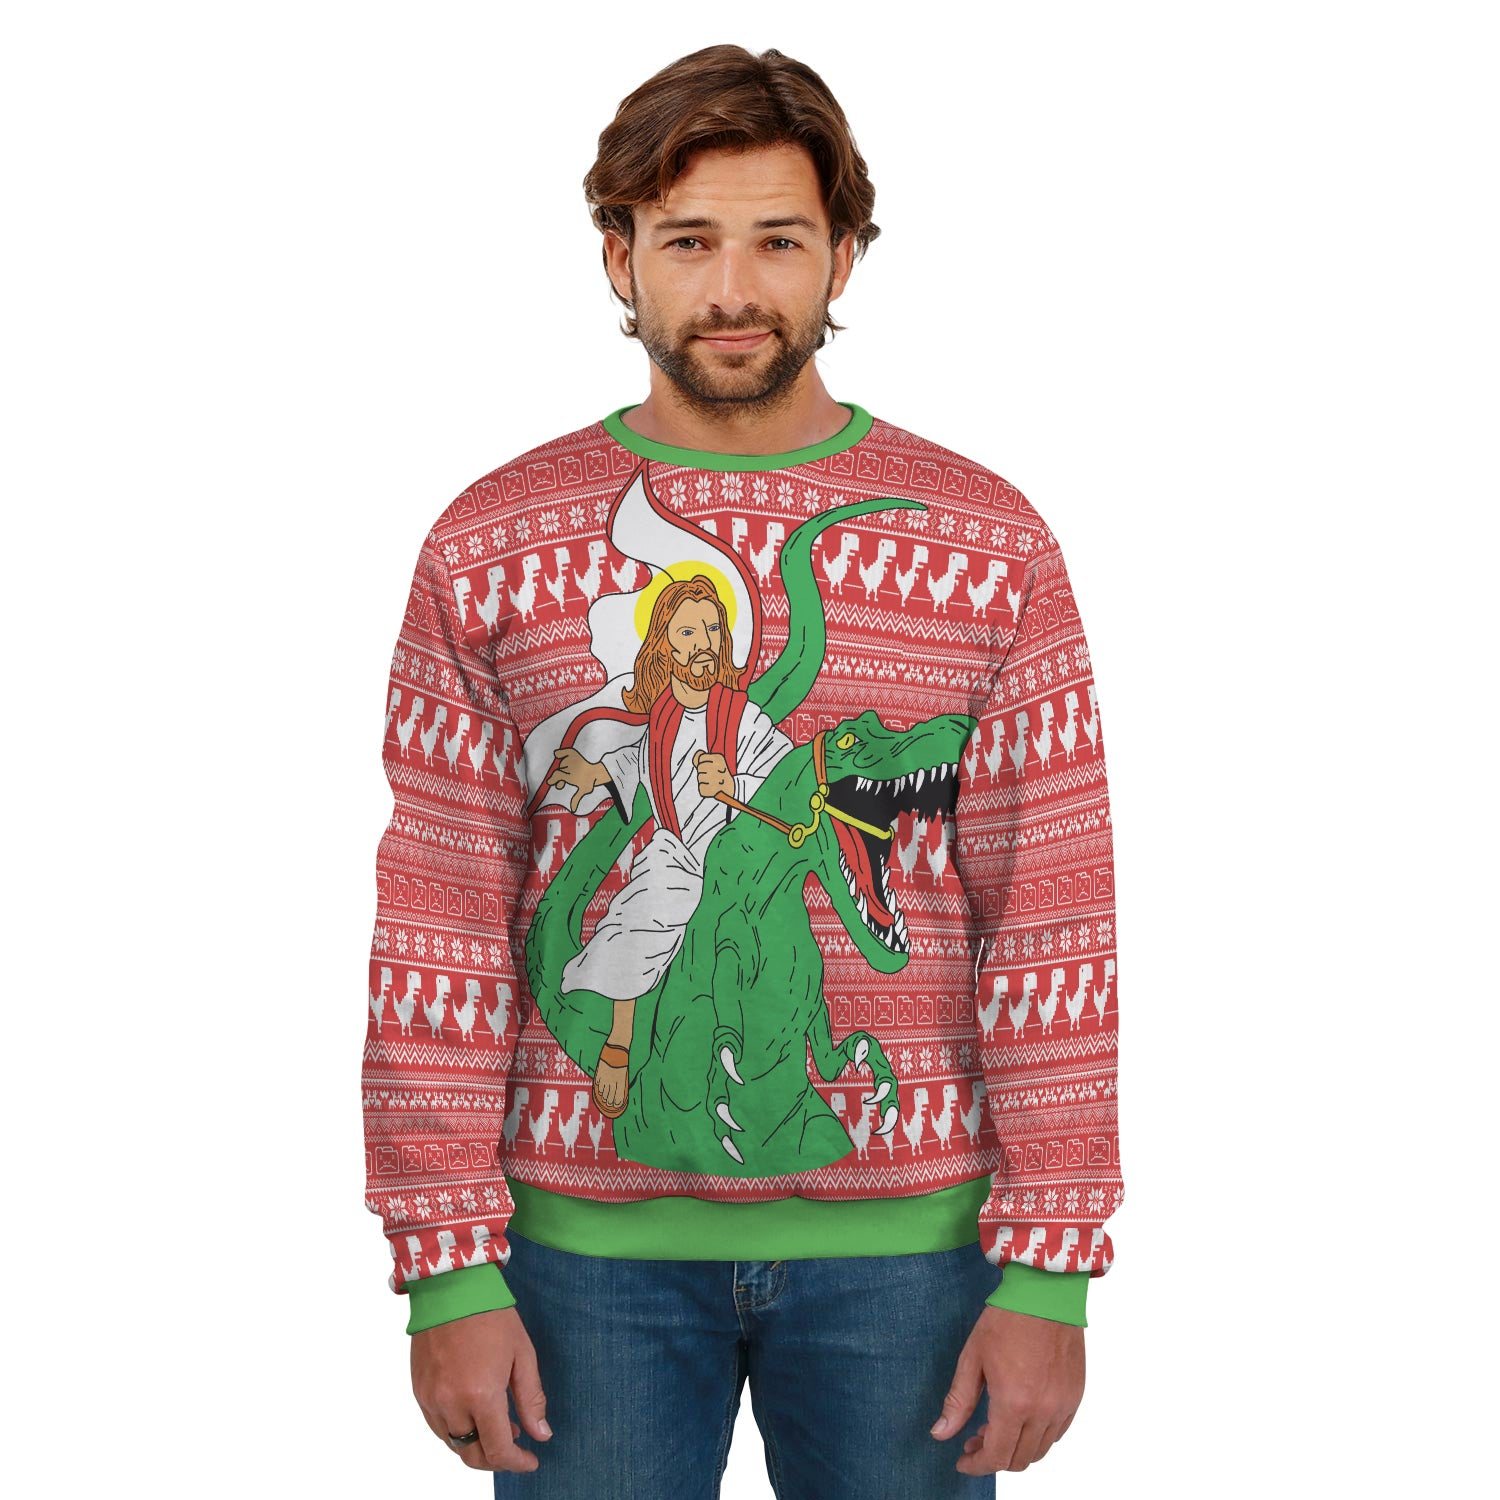 Jesus Riding T-Rex Ugly Sweater